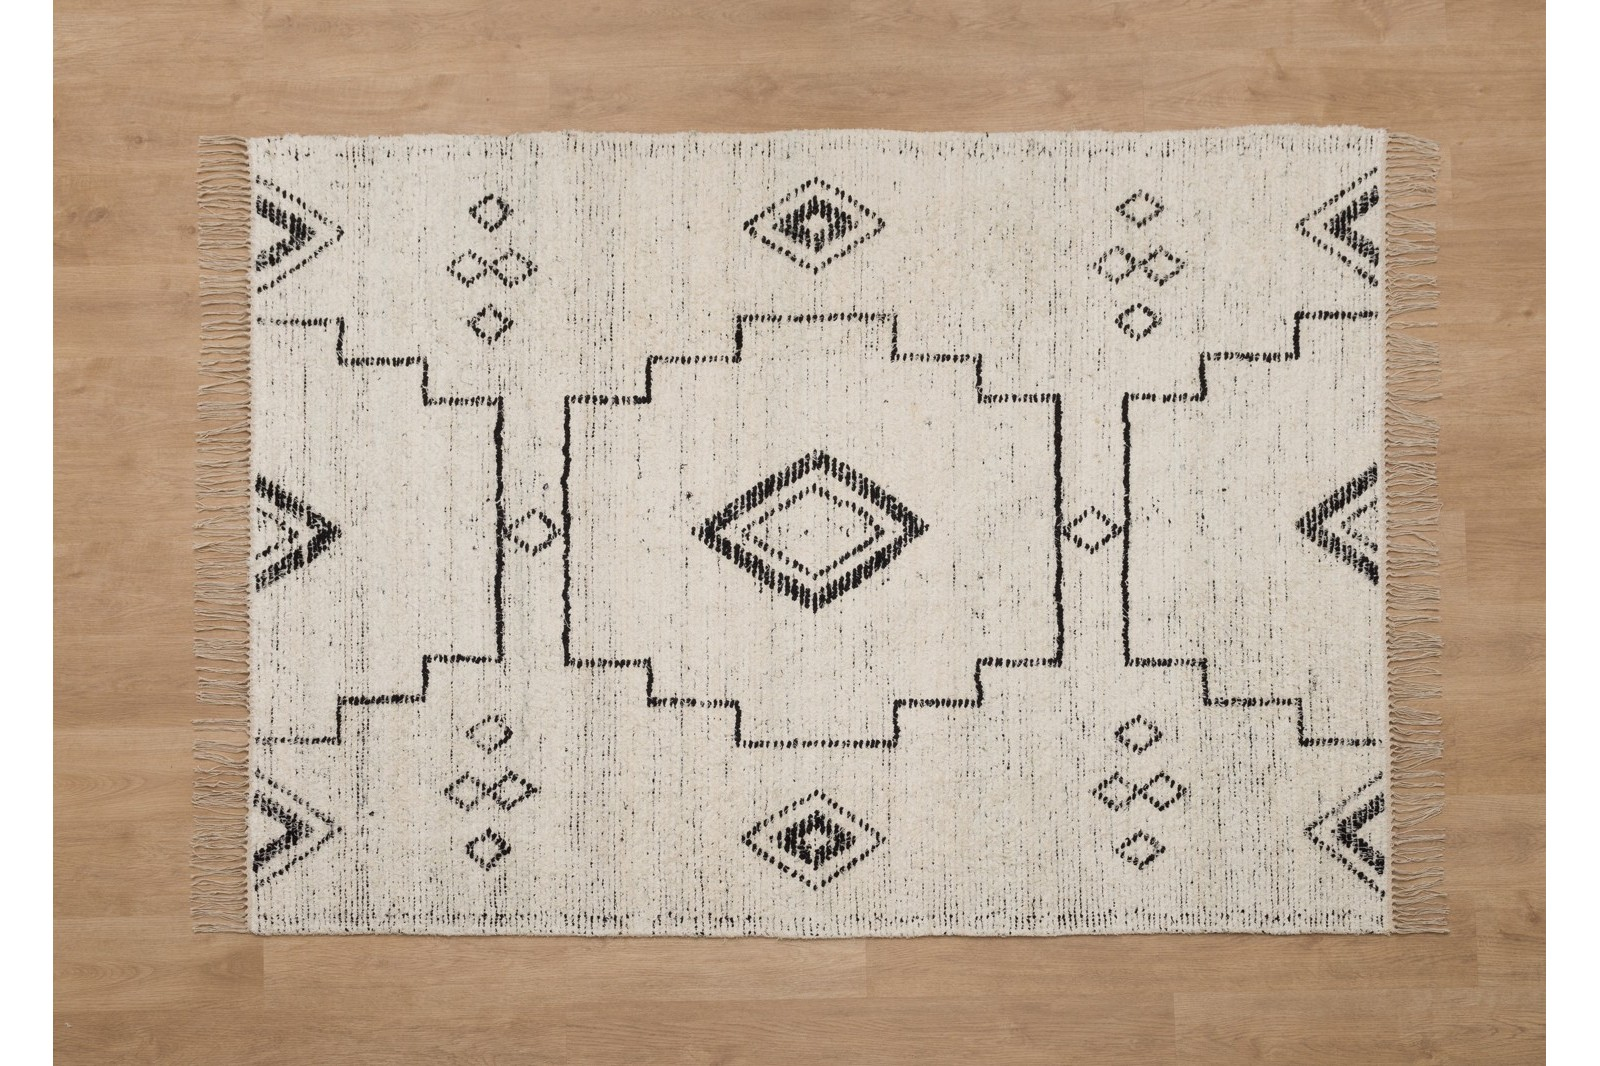 ADRIA RUG. COTTON AND ETHNIC PATTERNS